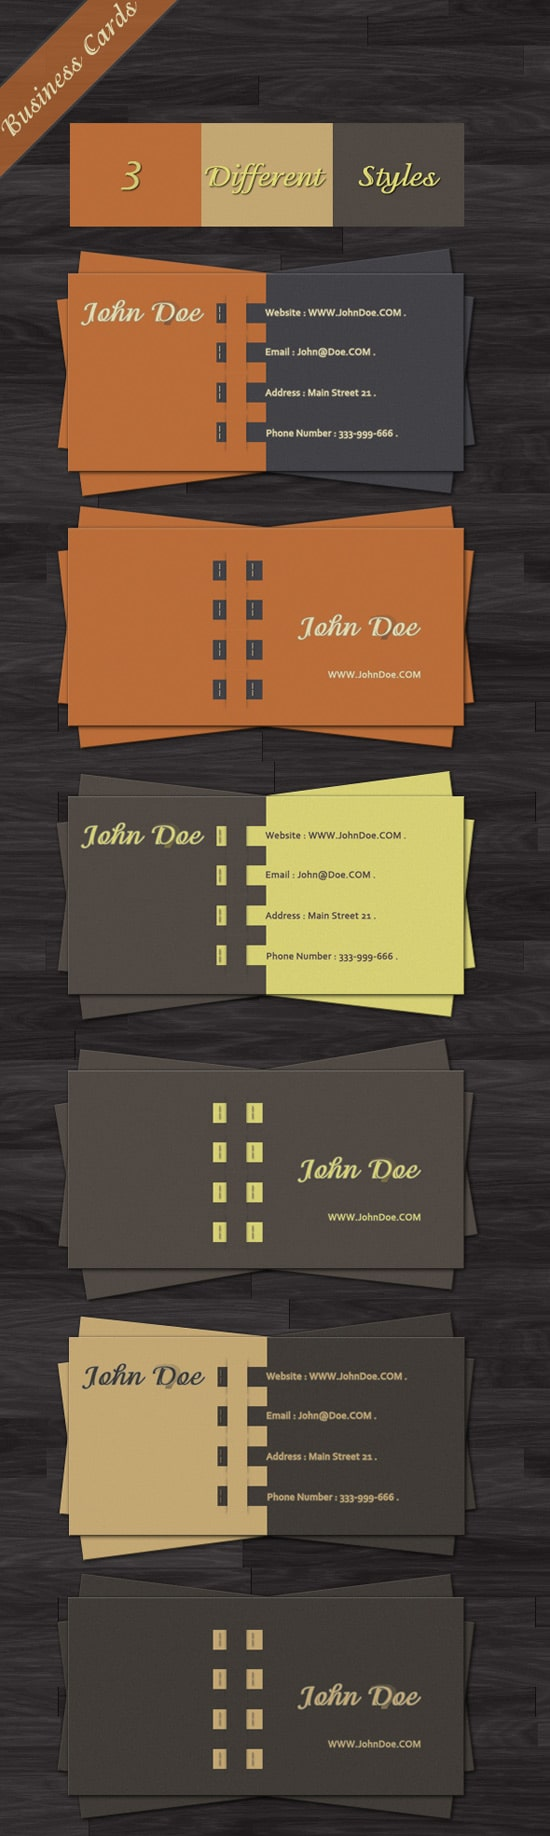 100 free business card templates designrfix business is business free psd vector business card flashek